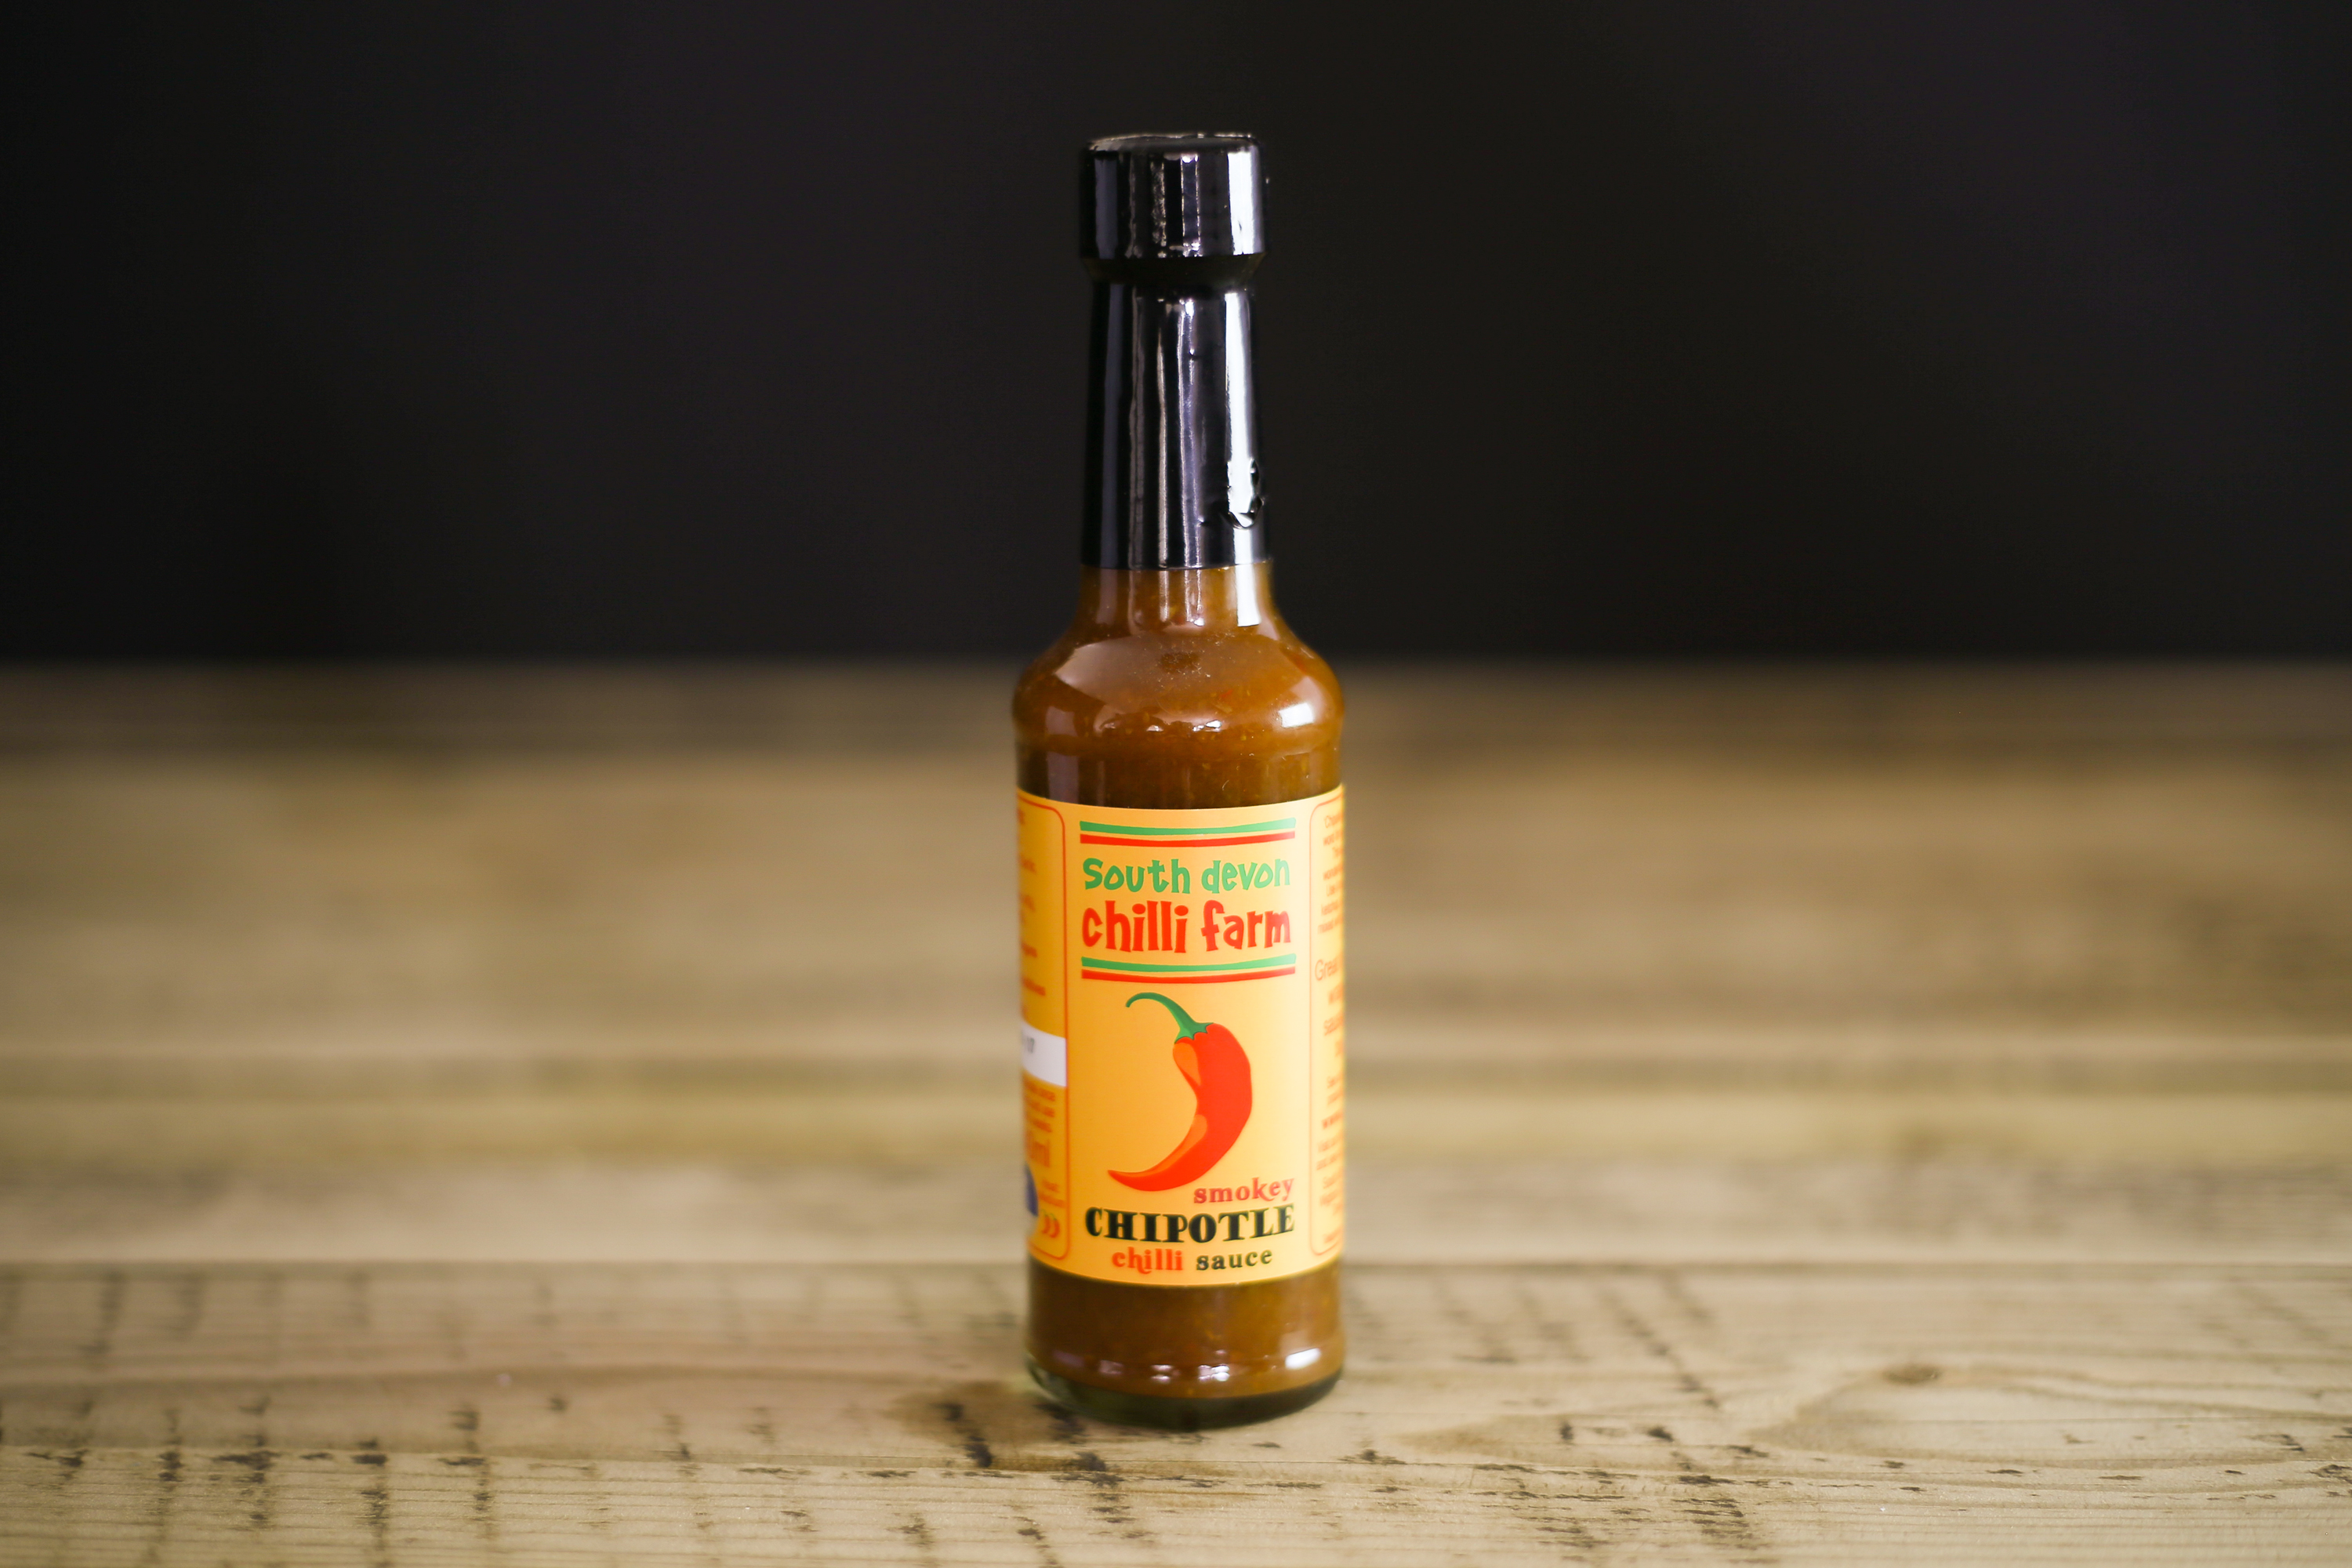 South Devon Chilli Farm Smokey Chipotle Chilli Sauce